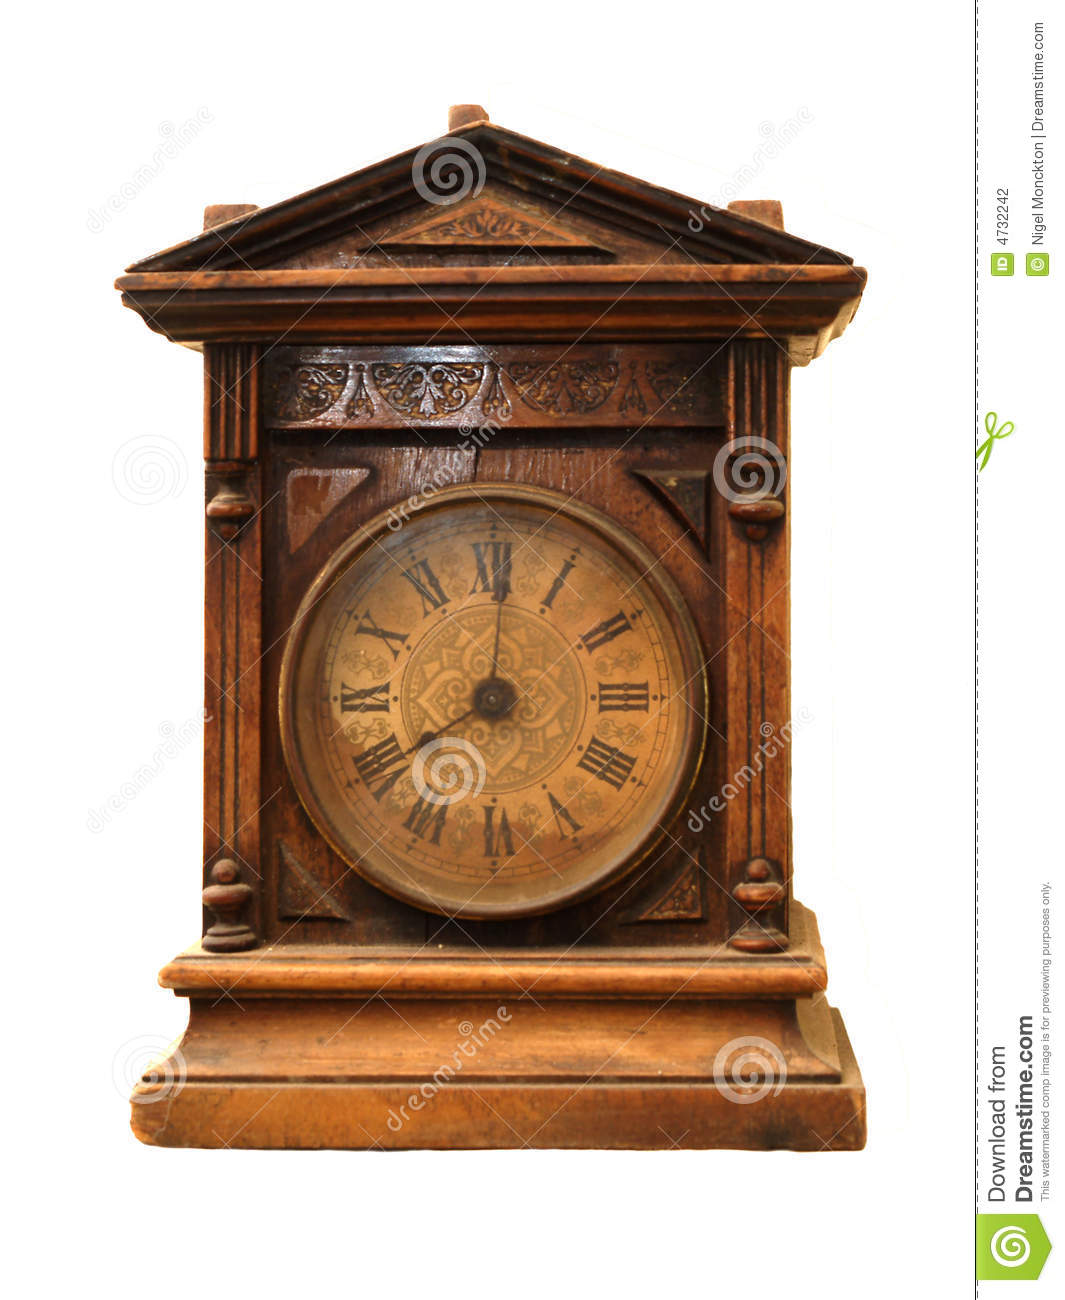 Antique Wooden Clock Stock Photography - Image: 4732242